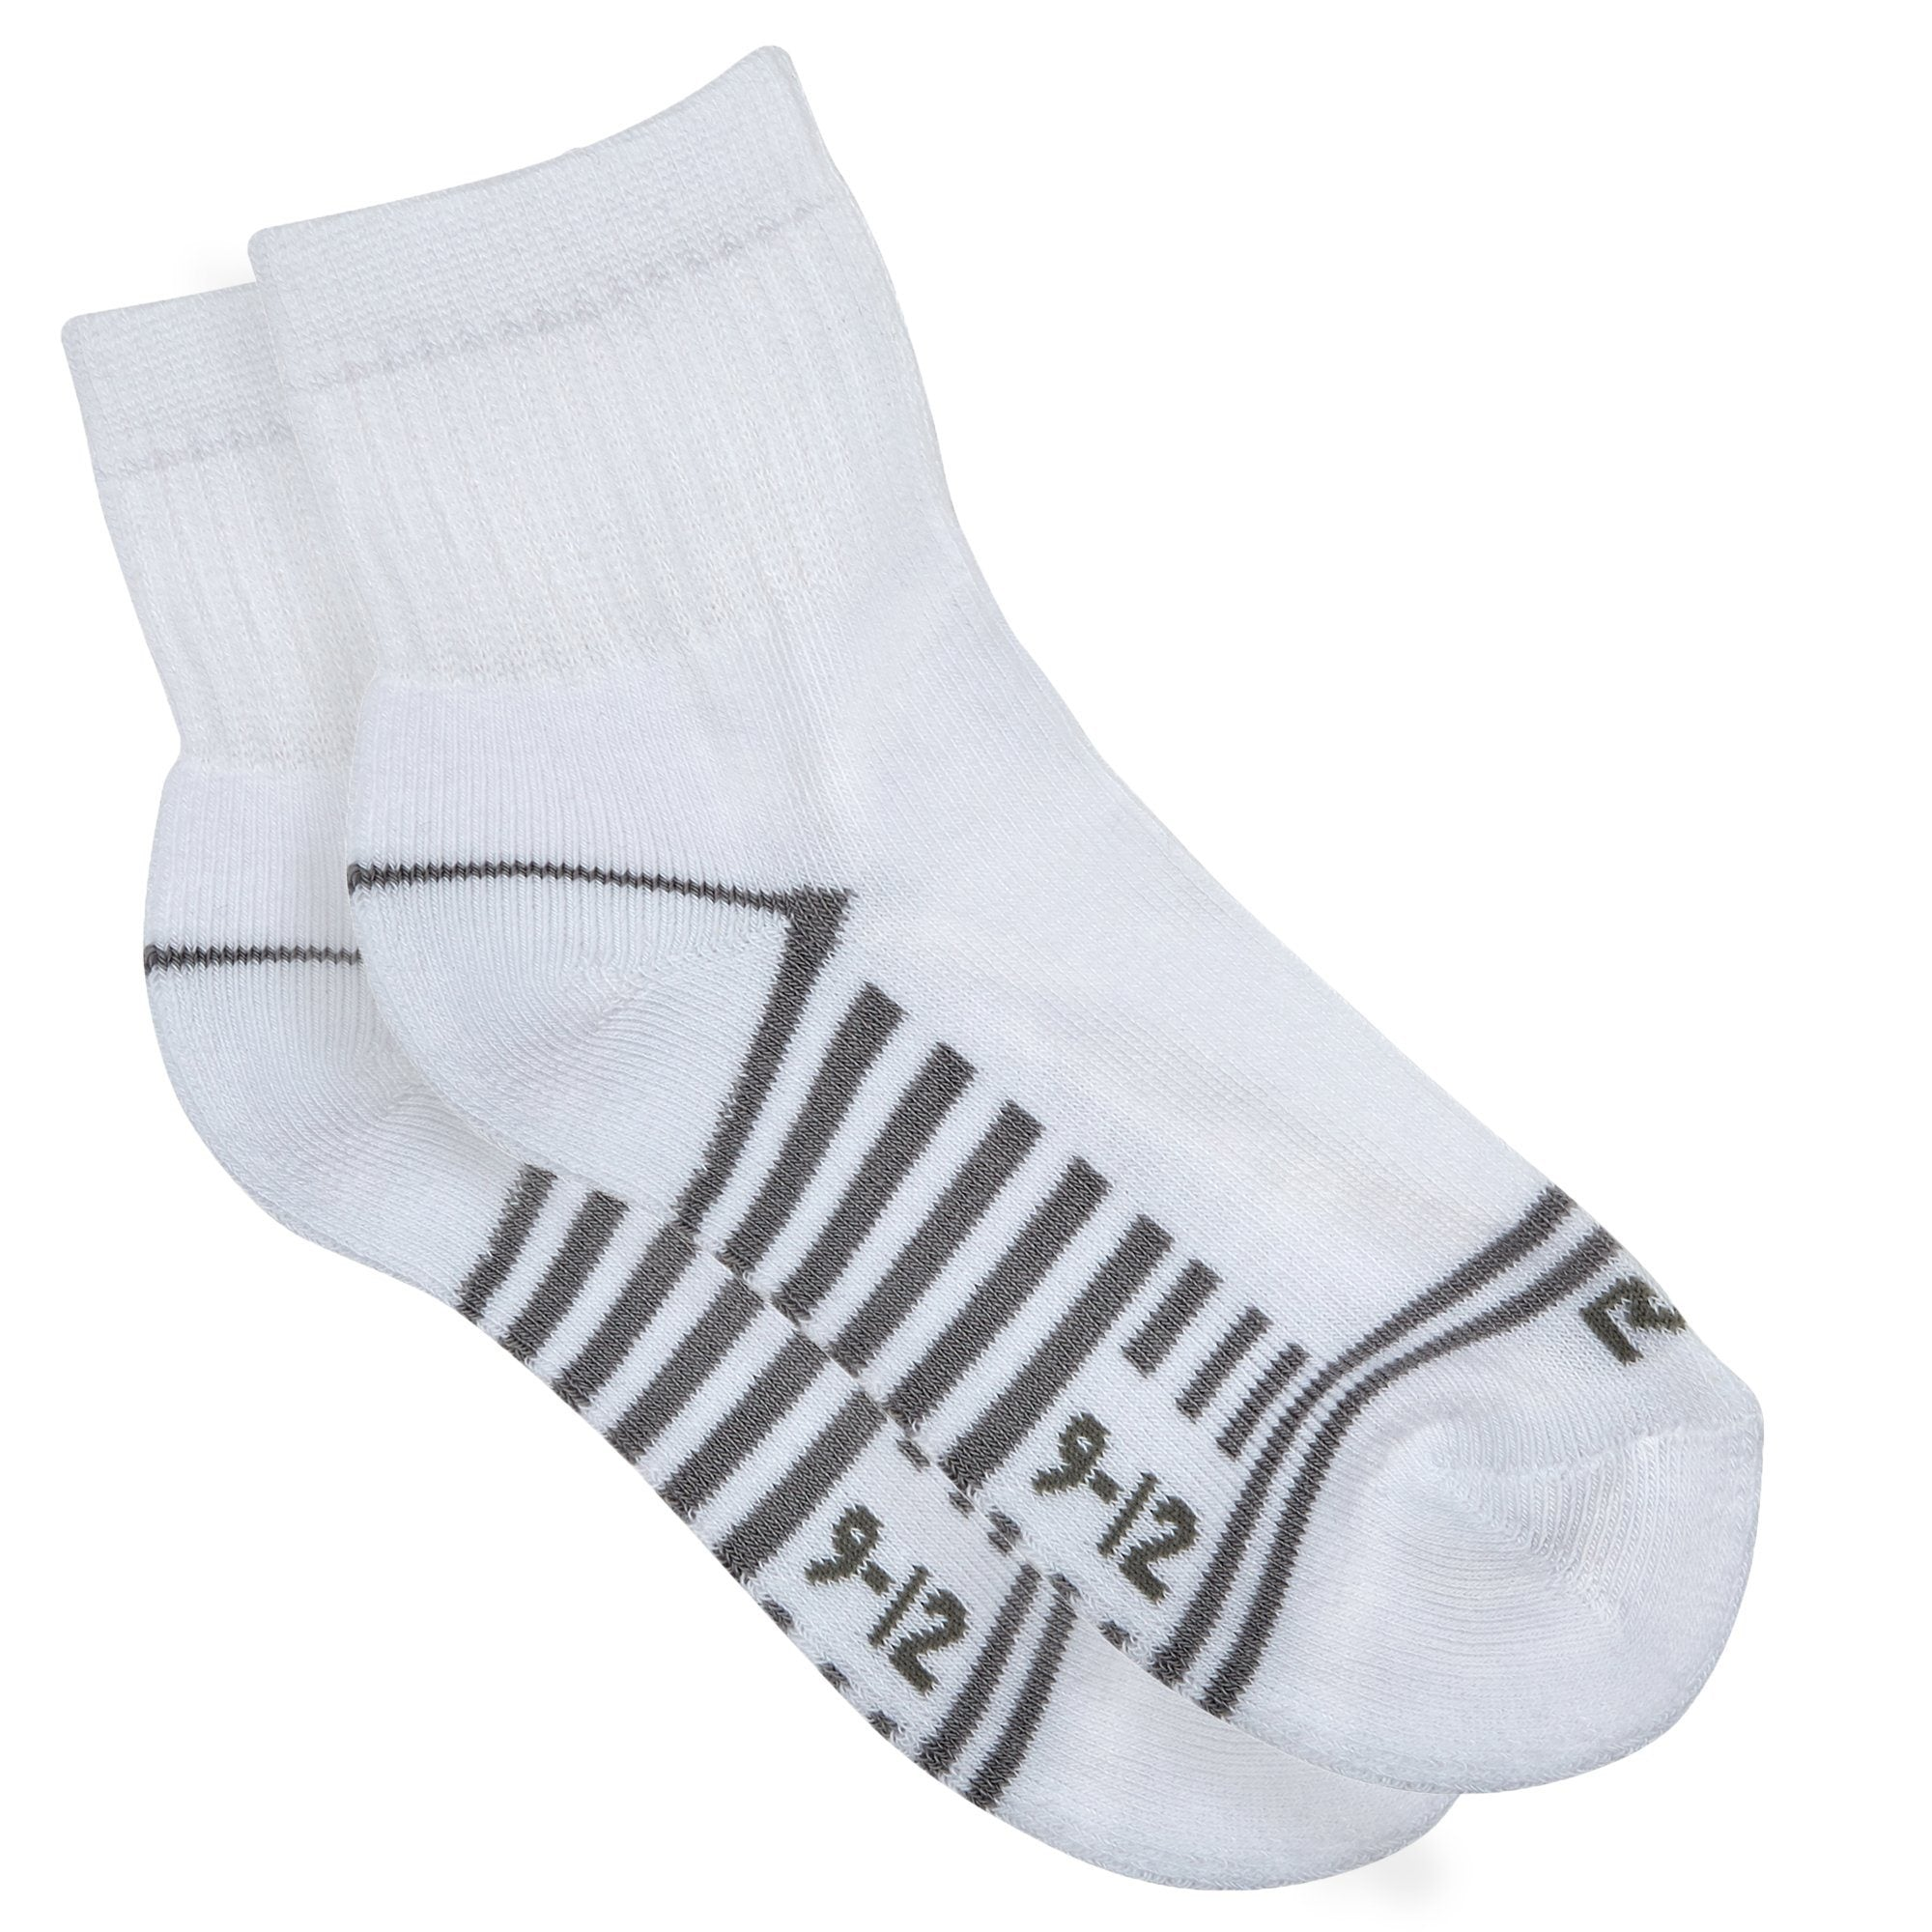 Rio Kids 5 Pack Quarter Crew Socks - White Accessories Rio